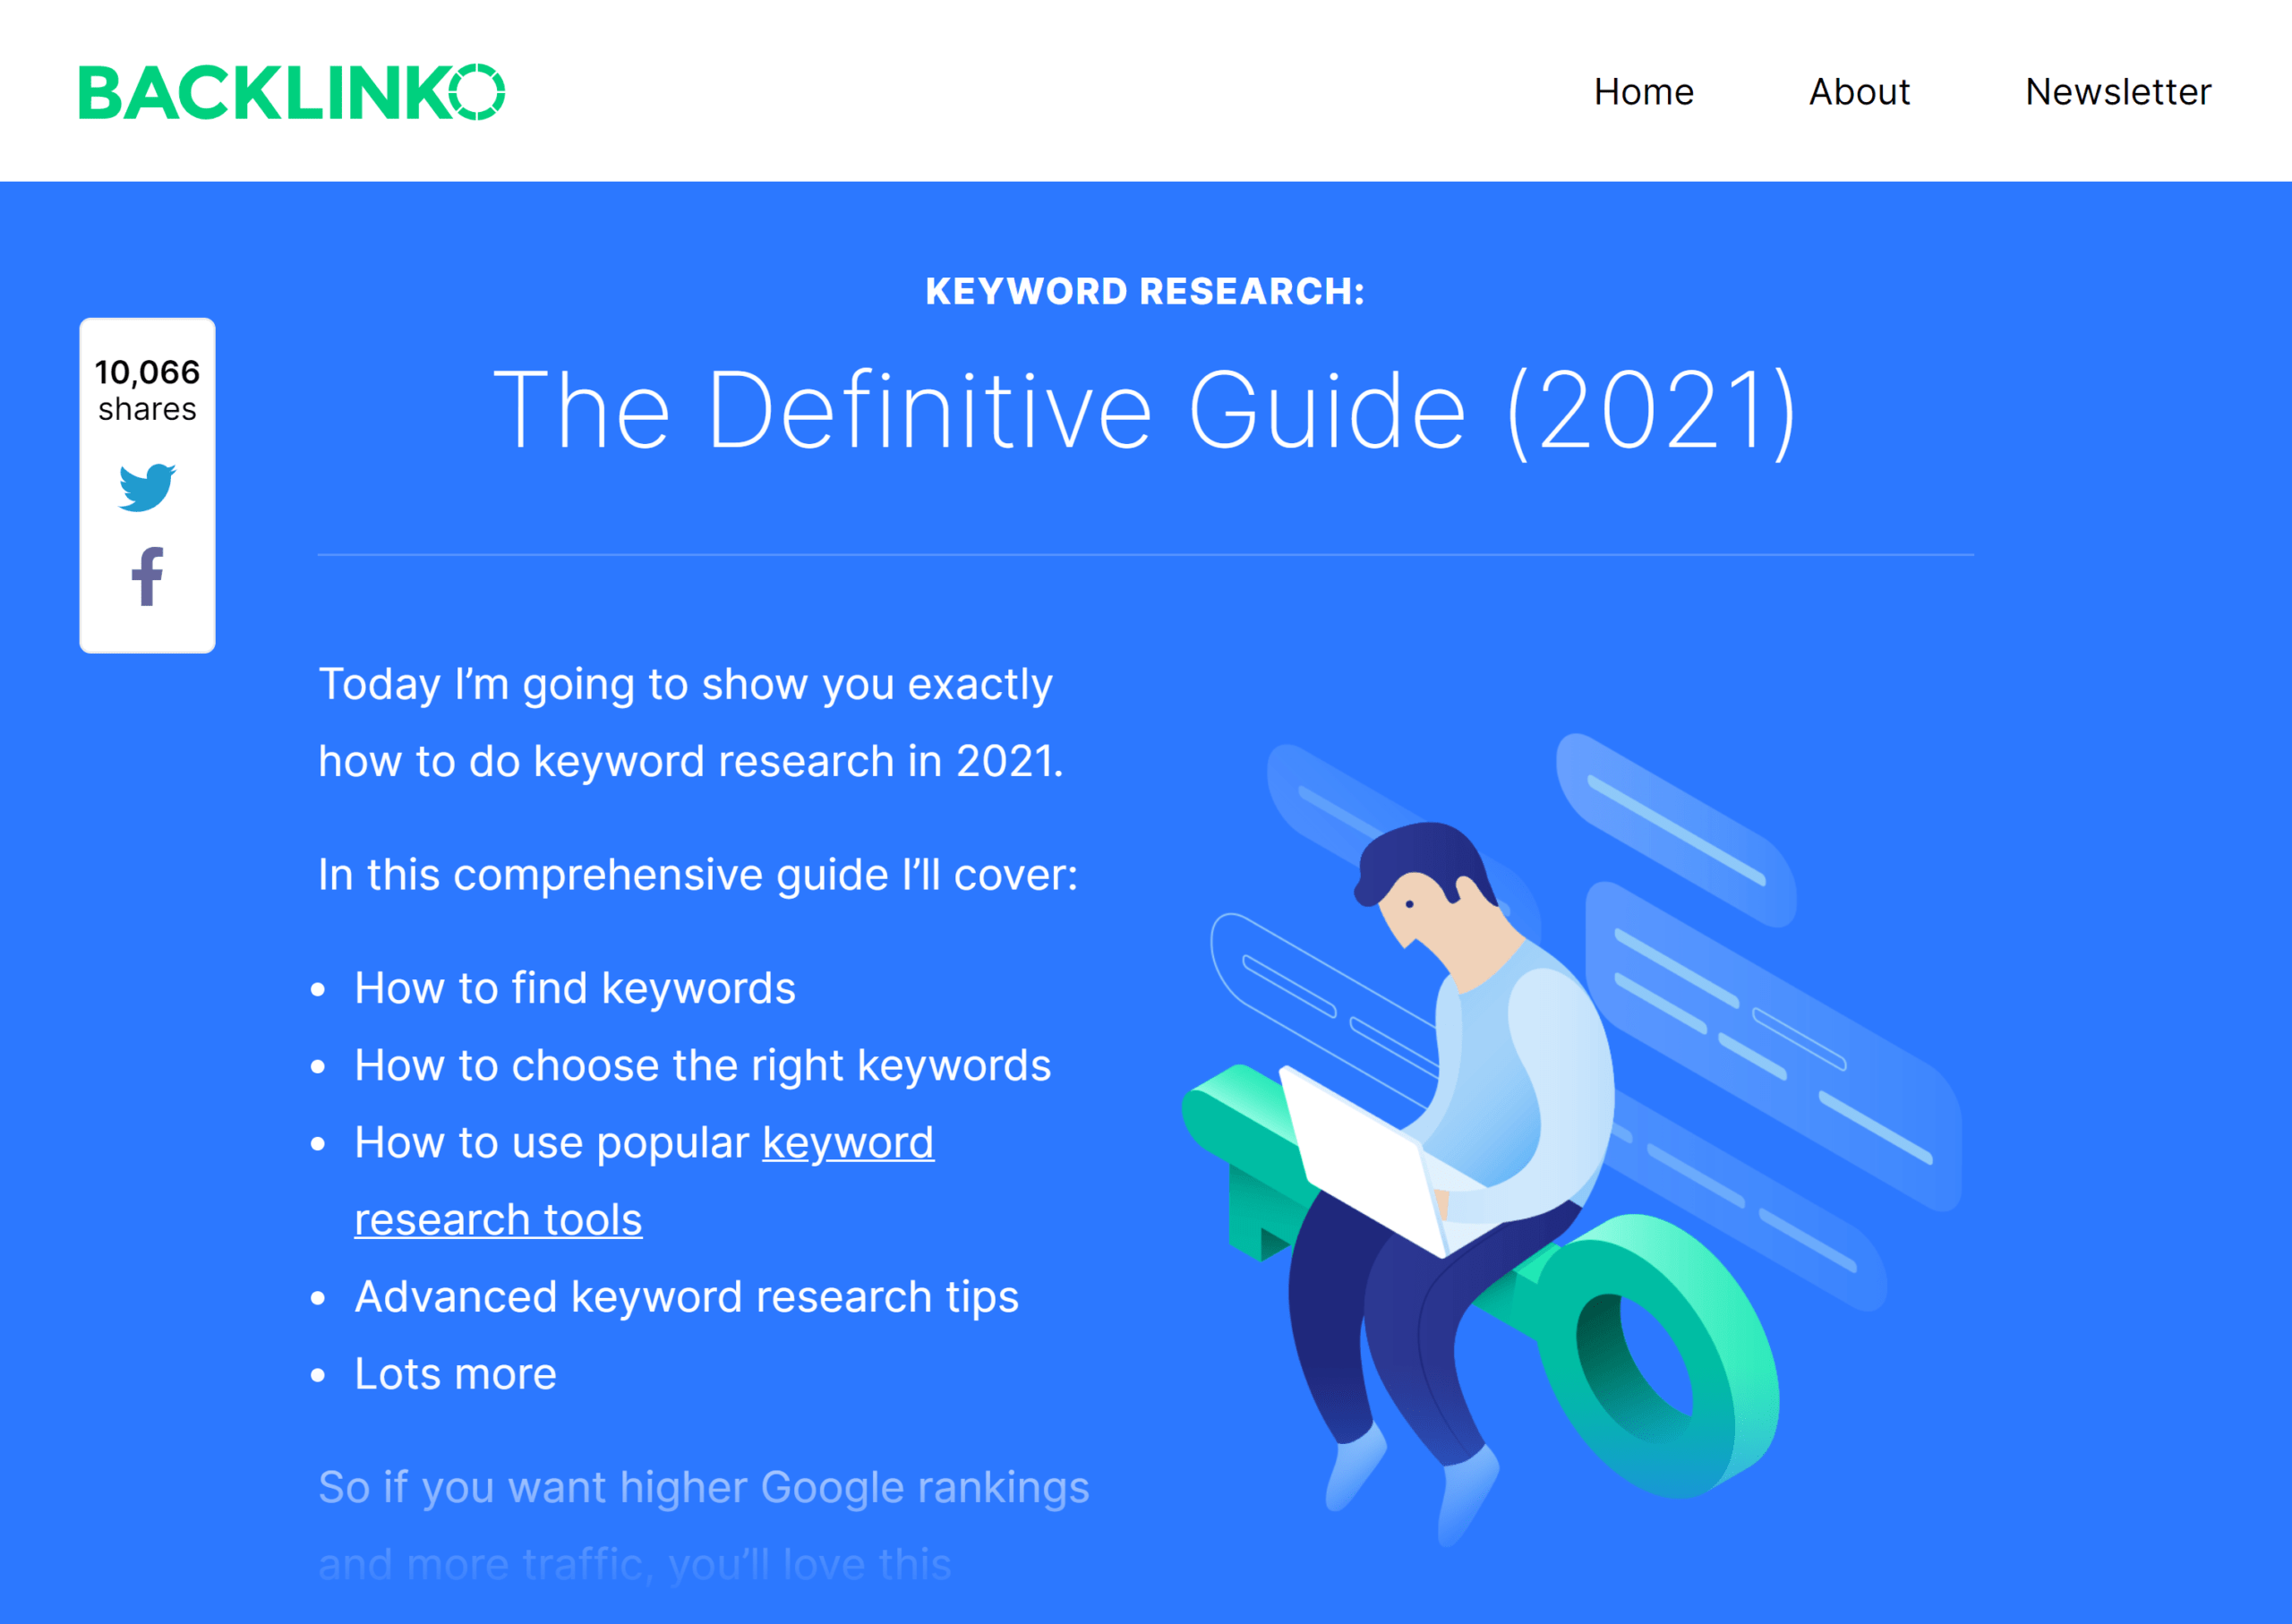 Backlinko – Keyword Research guide